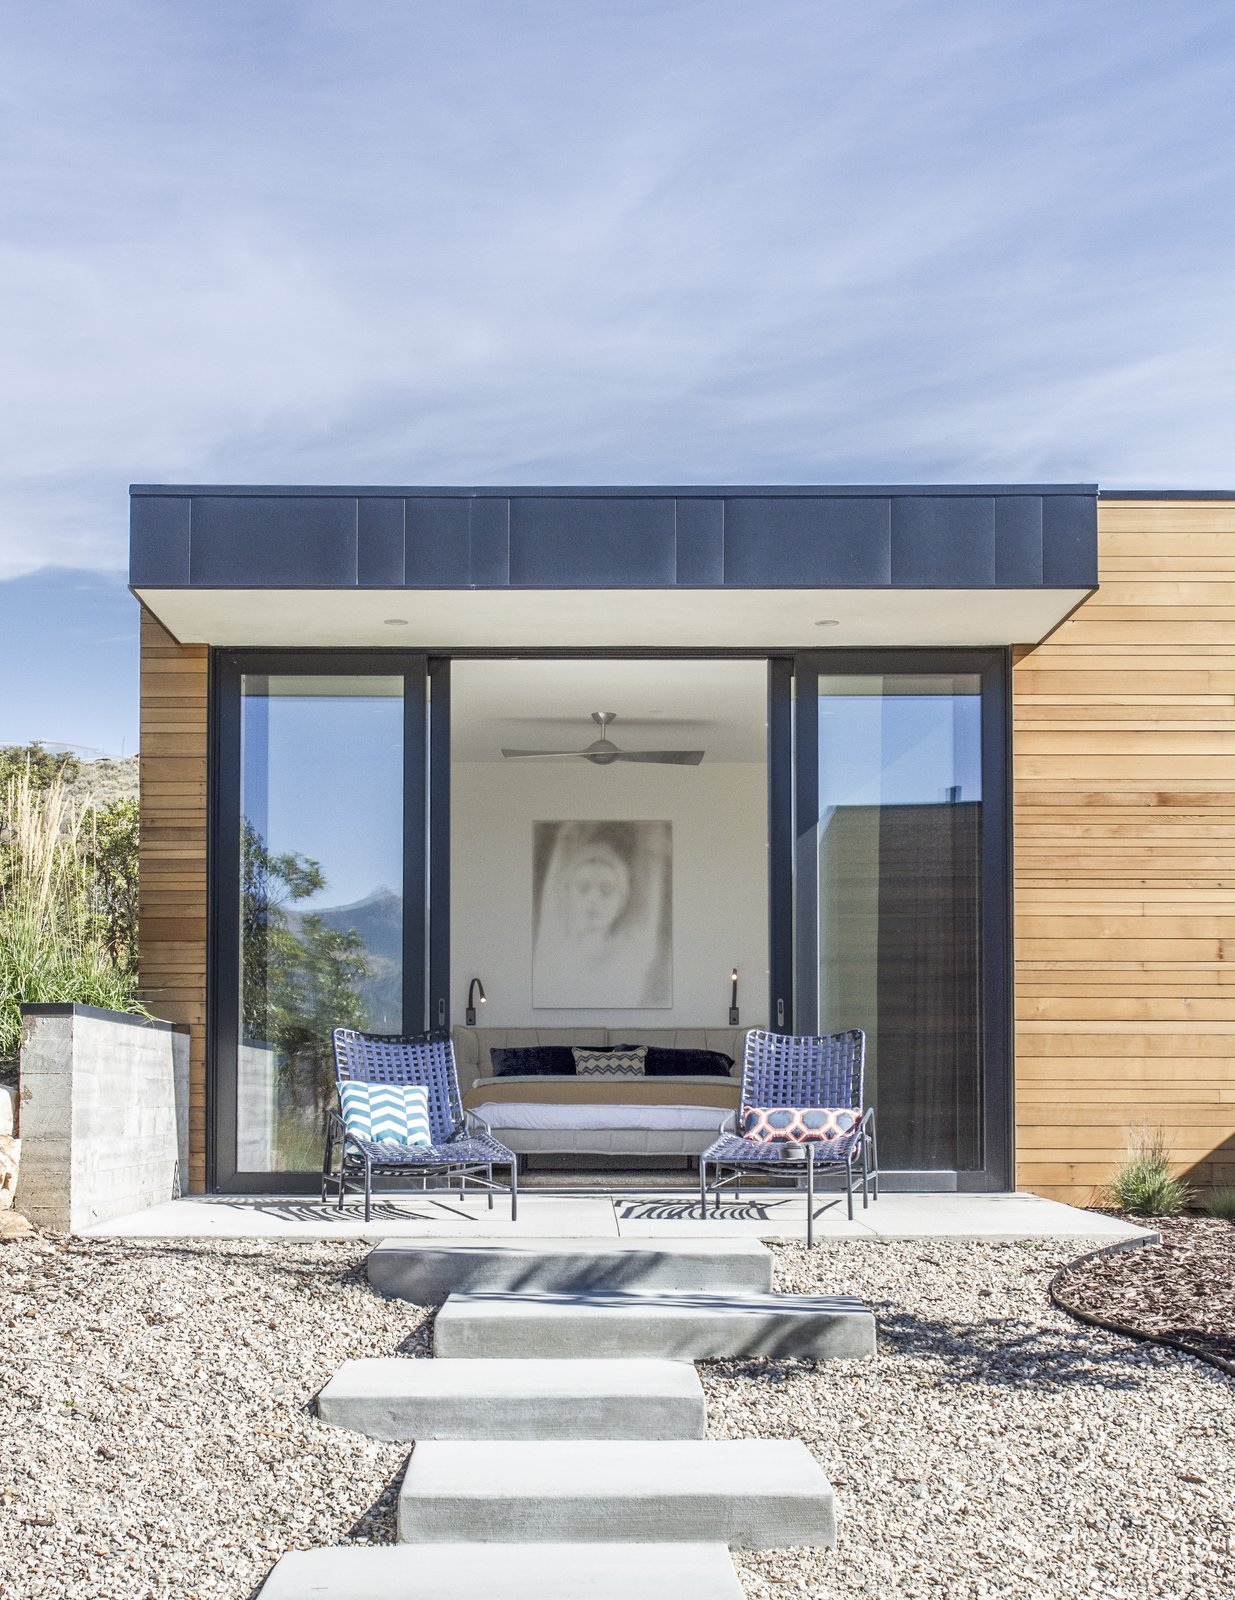 Outdoor, Shrubs, Concrete Patio, Porch, Deck, Back Yard, Trees, Walkways, Small Patio, Porch, Deck, and Hardscapes  Park City Modern Residence by Sparano + Mooney Architecture